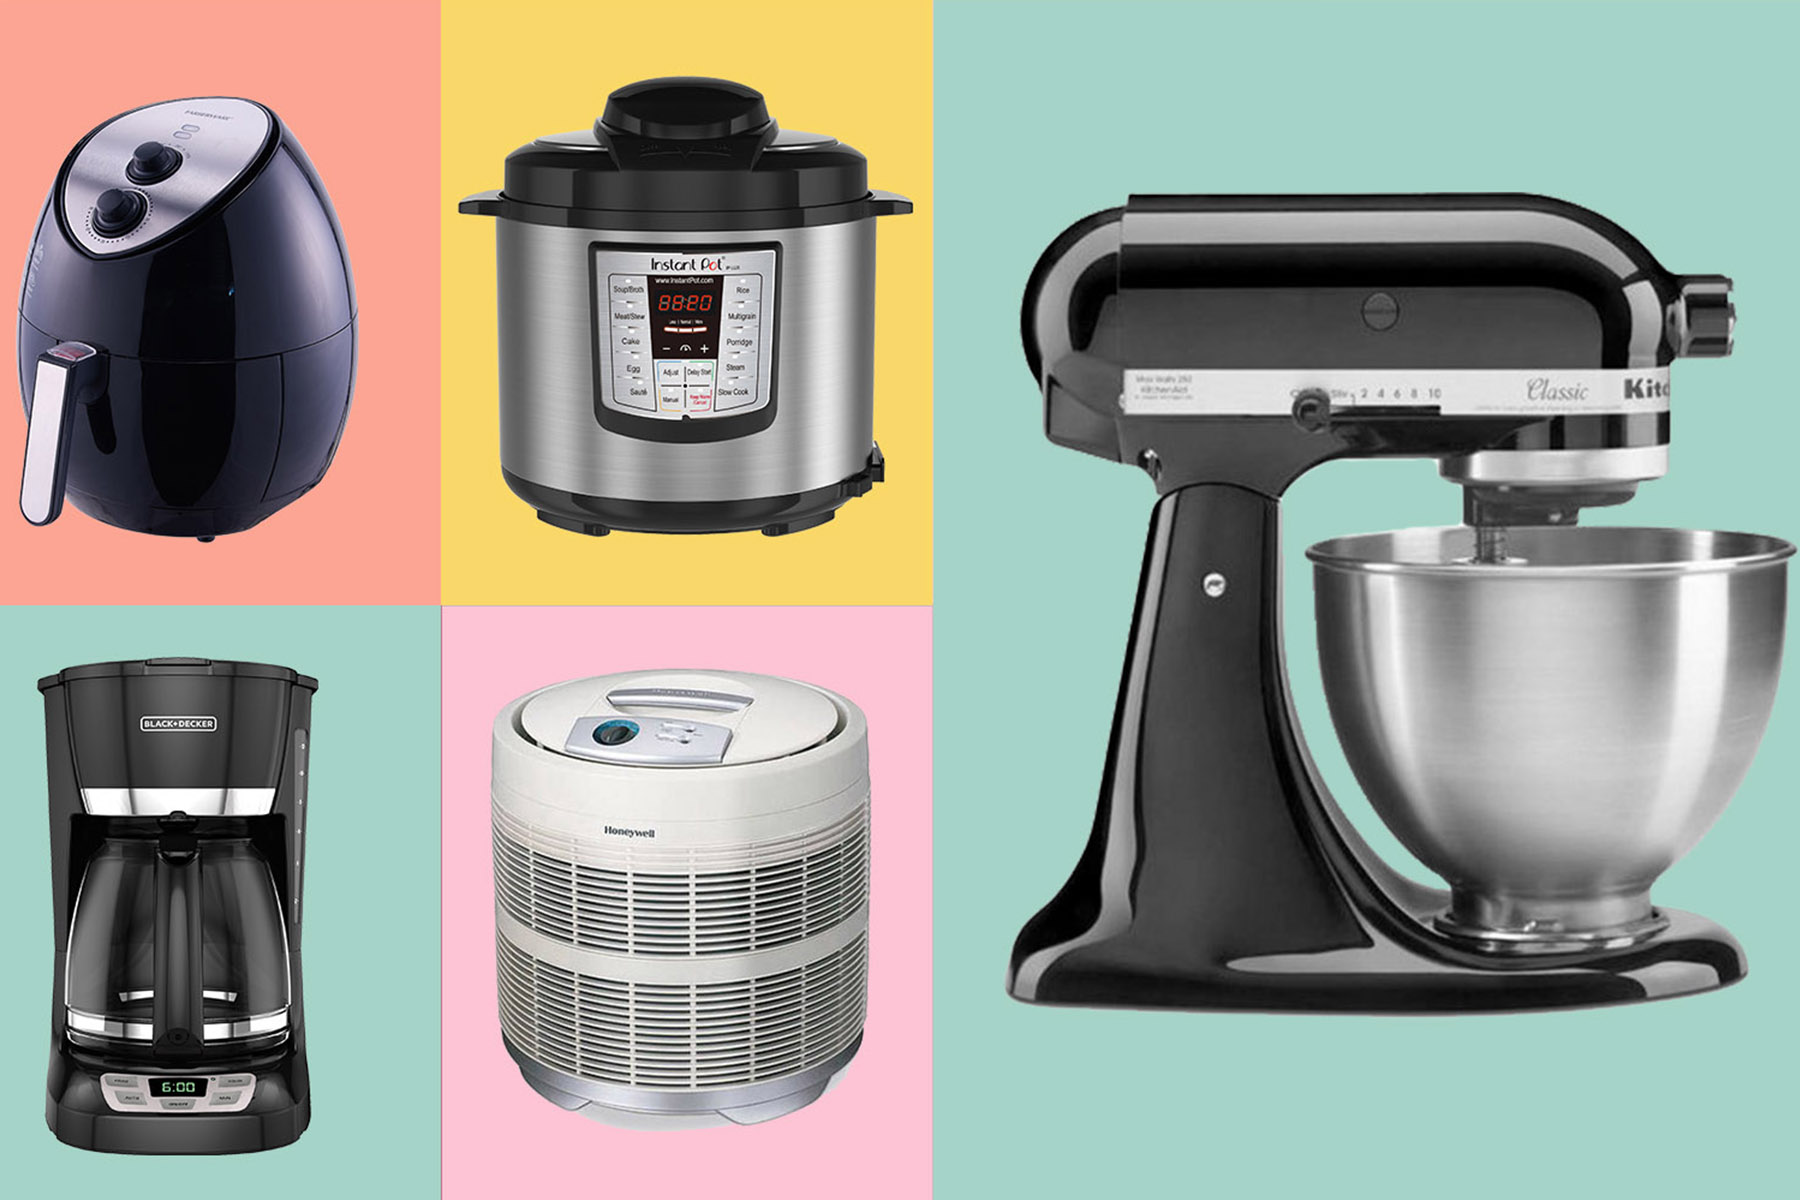 Best-Selling Home Products at Walmart